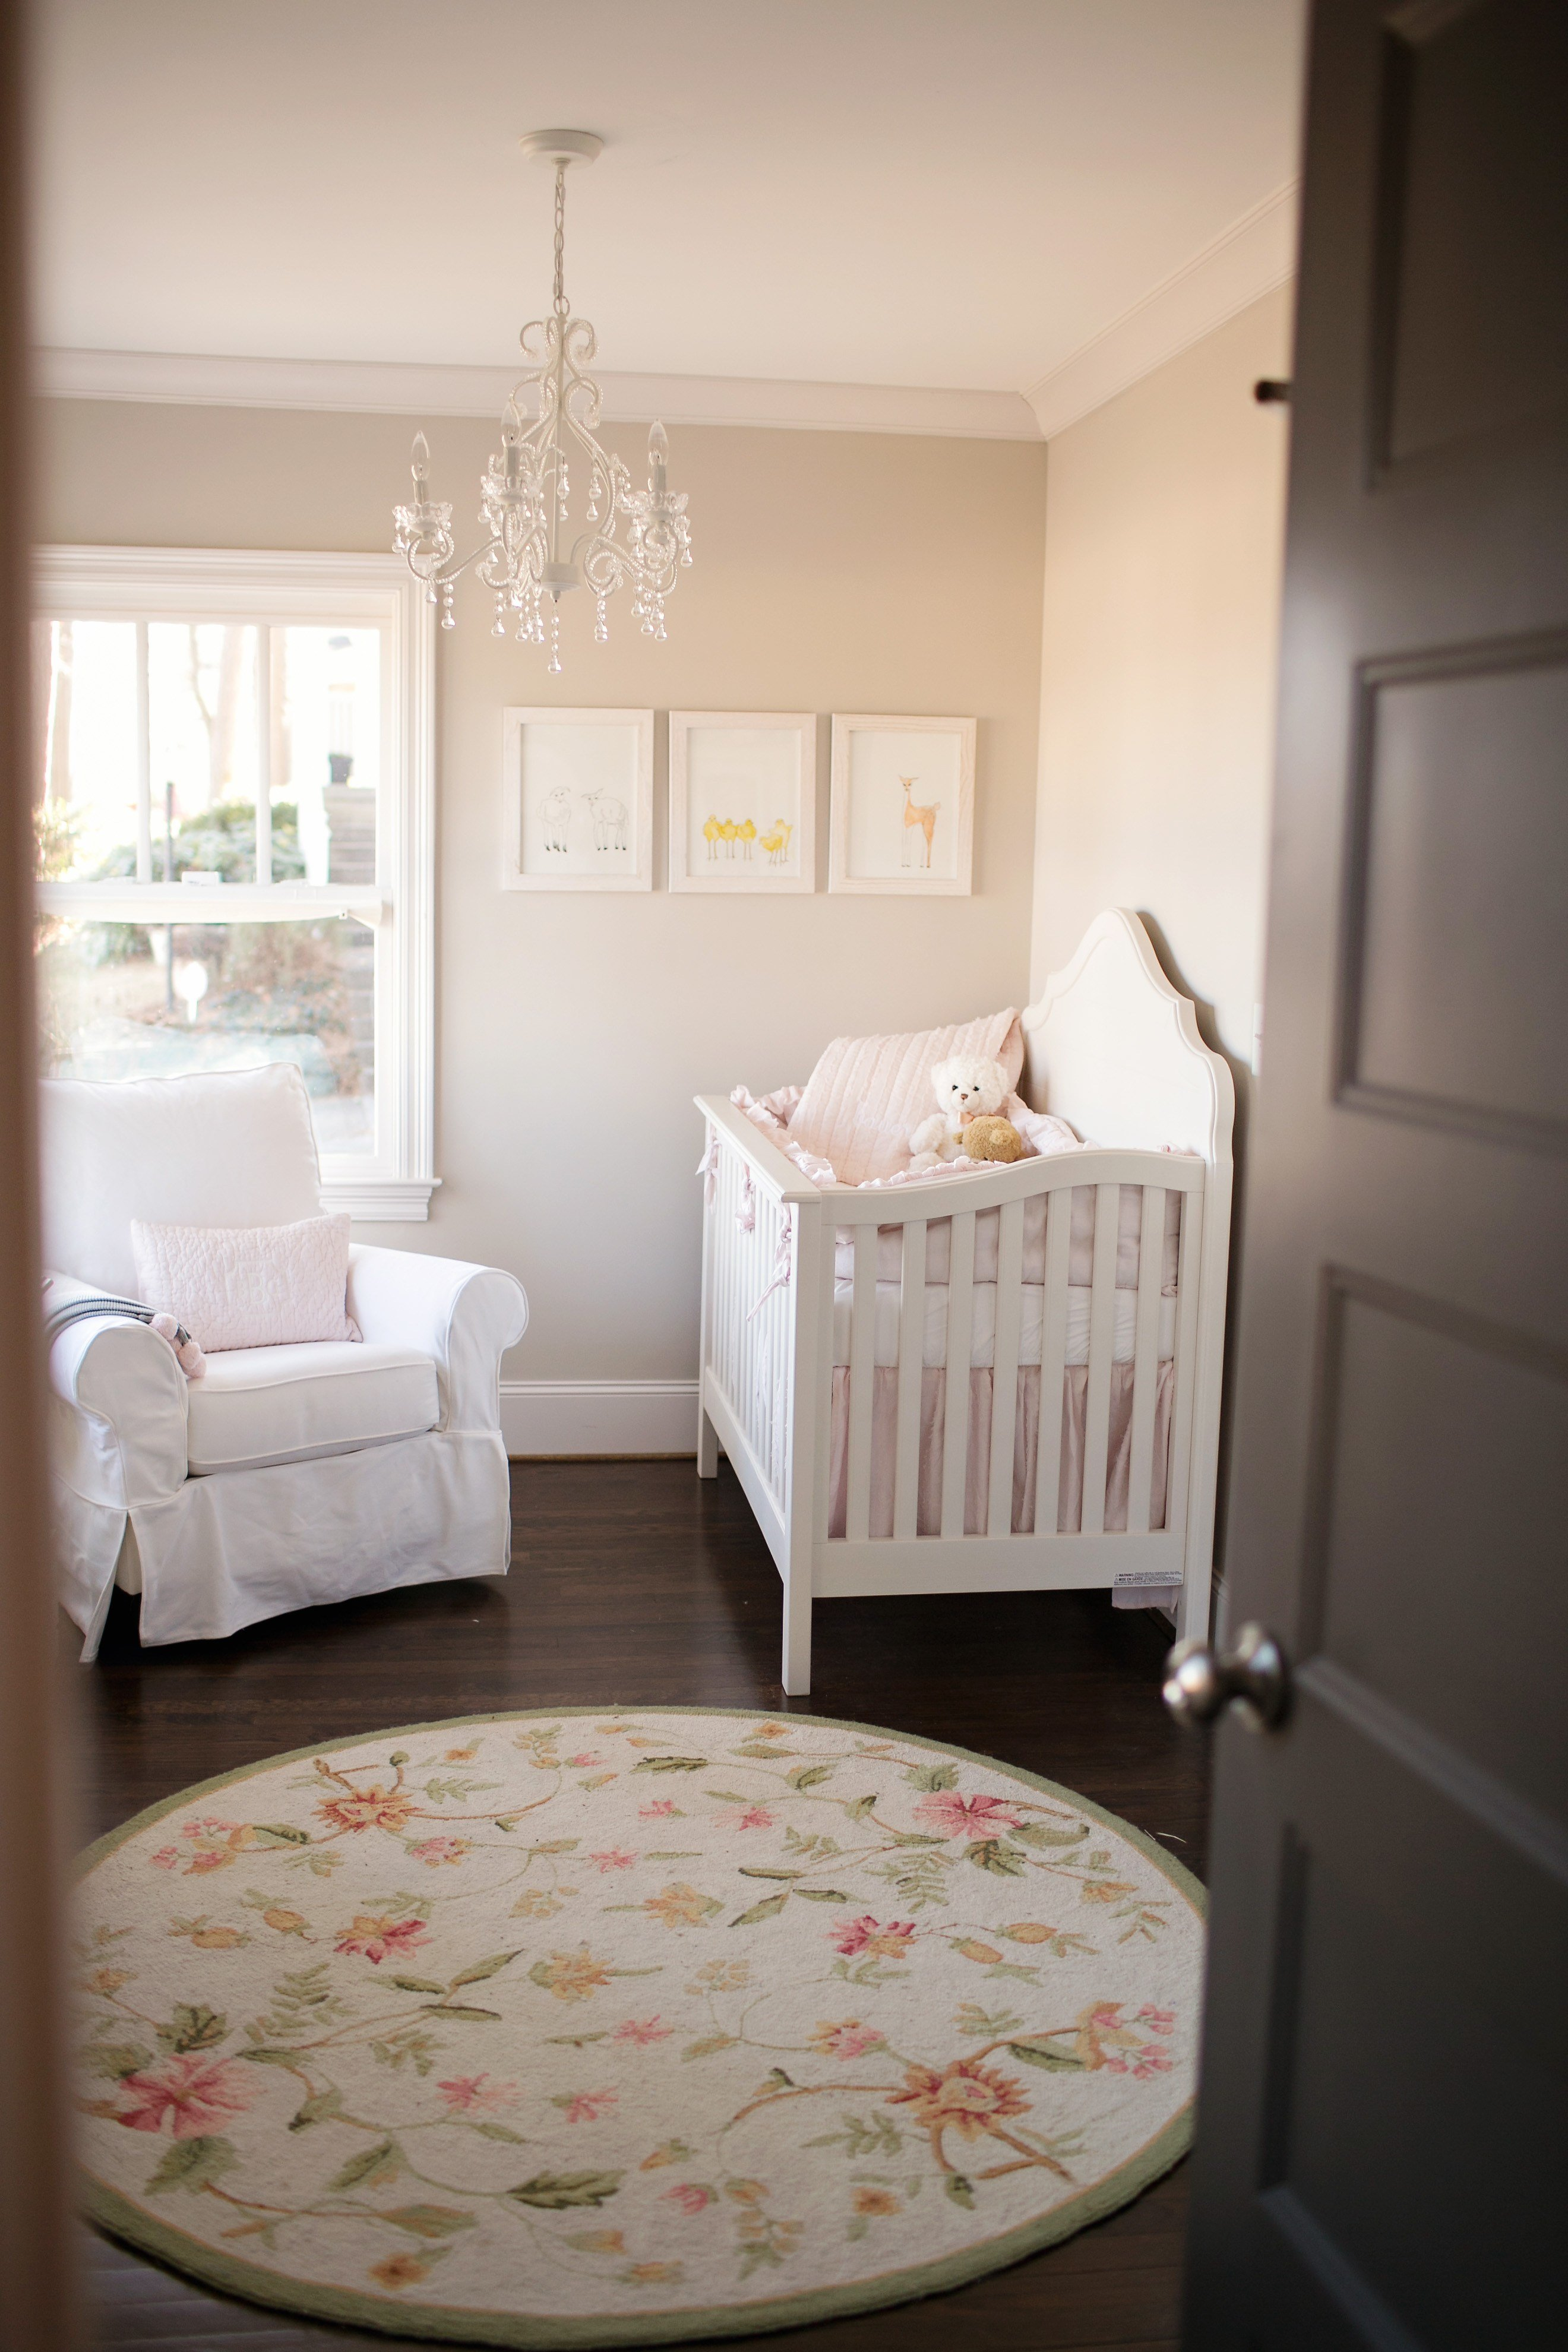 Best Designing For A Brand New Baby In A Brand New Space With Pictures